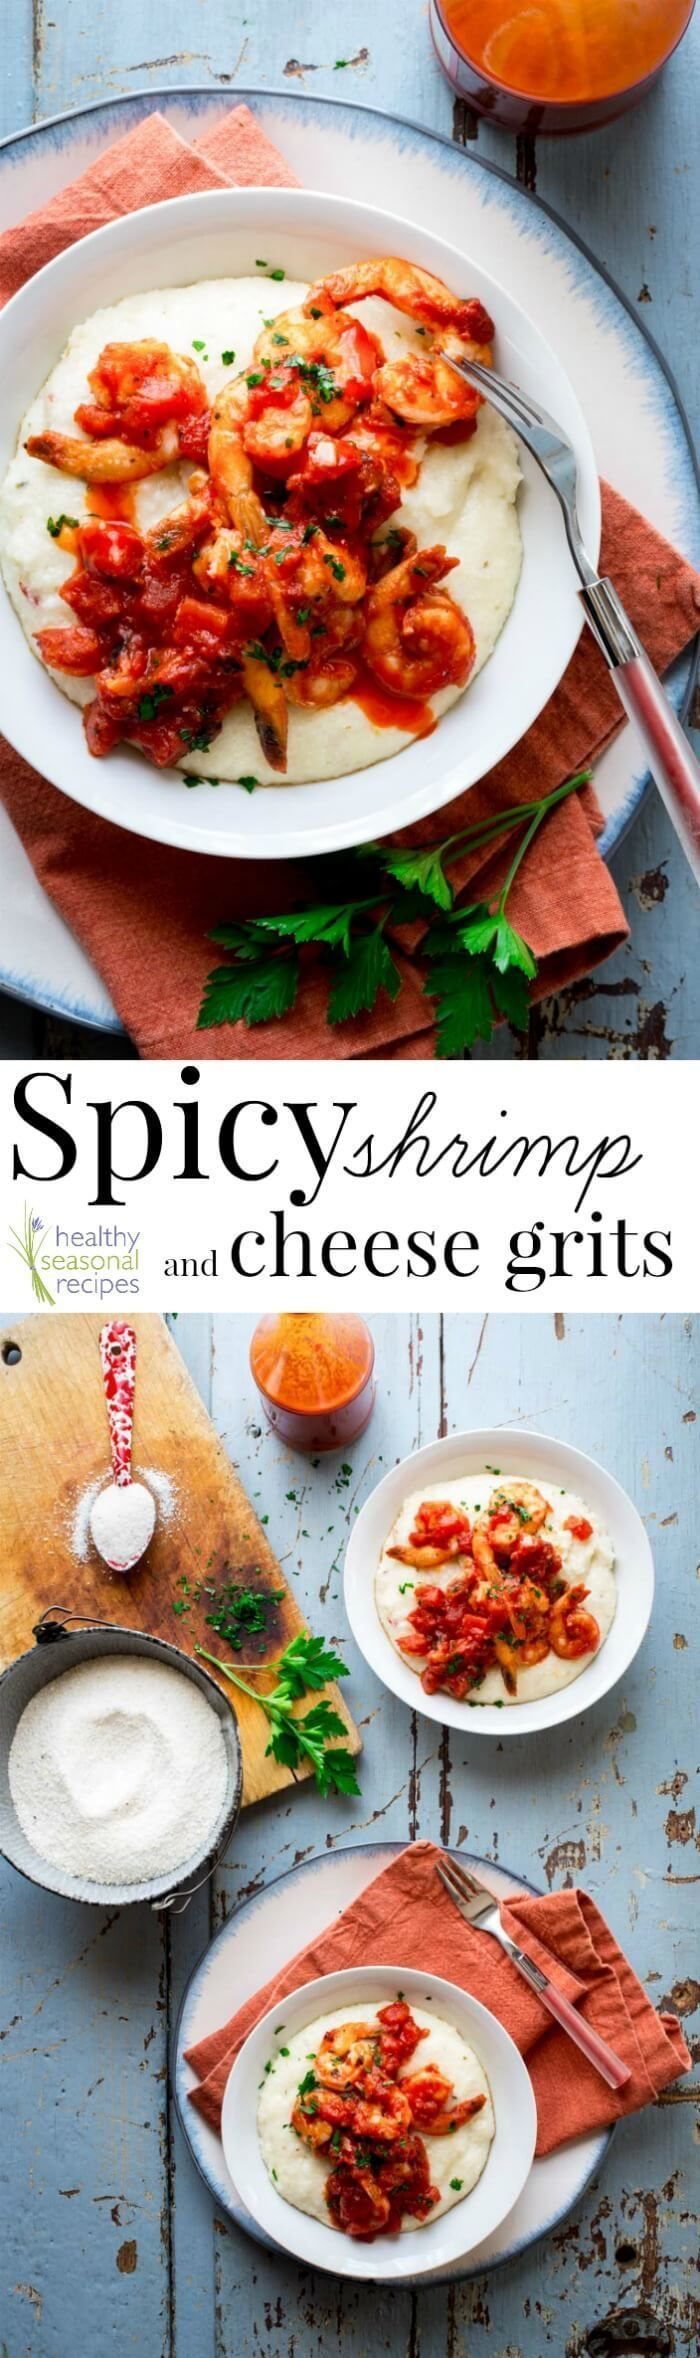 #Sponsored. This Spicy Shrimp and Cheese Grits with Tomatoes recipe is the best! It is so fast, delicious and healthy. Naturally gluten-free and ready in 17 minutes flat! @healthyseasonal #lentrecipe #mardigras #seafoodrecipe #shrimpandgrits